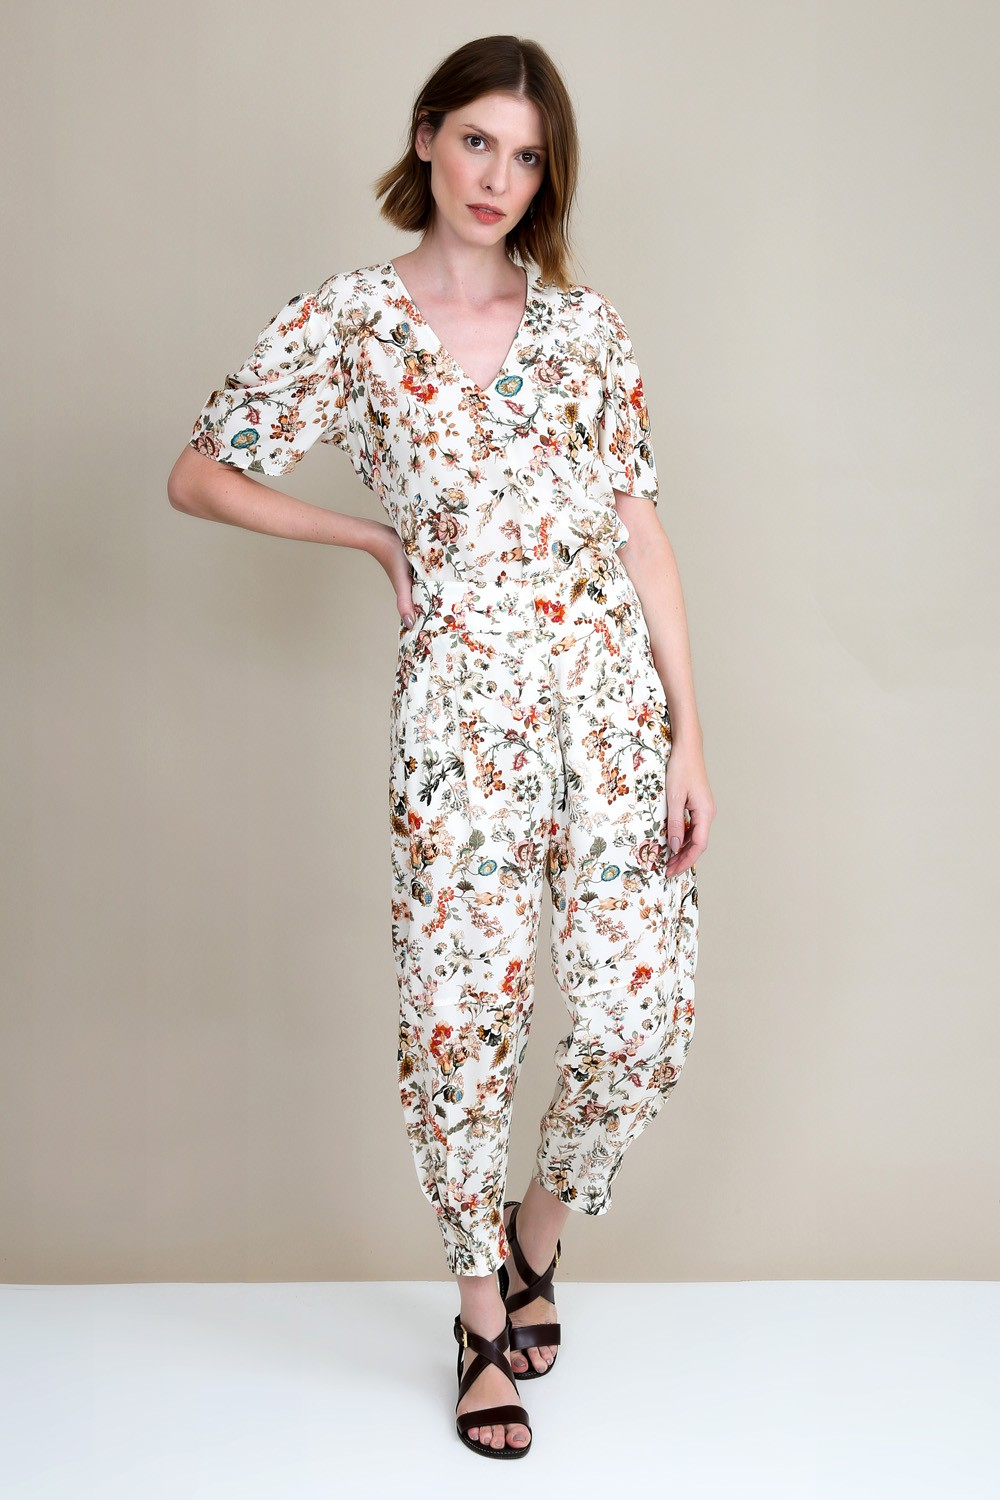 BLUSA BLOOMING I21